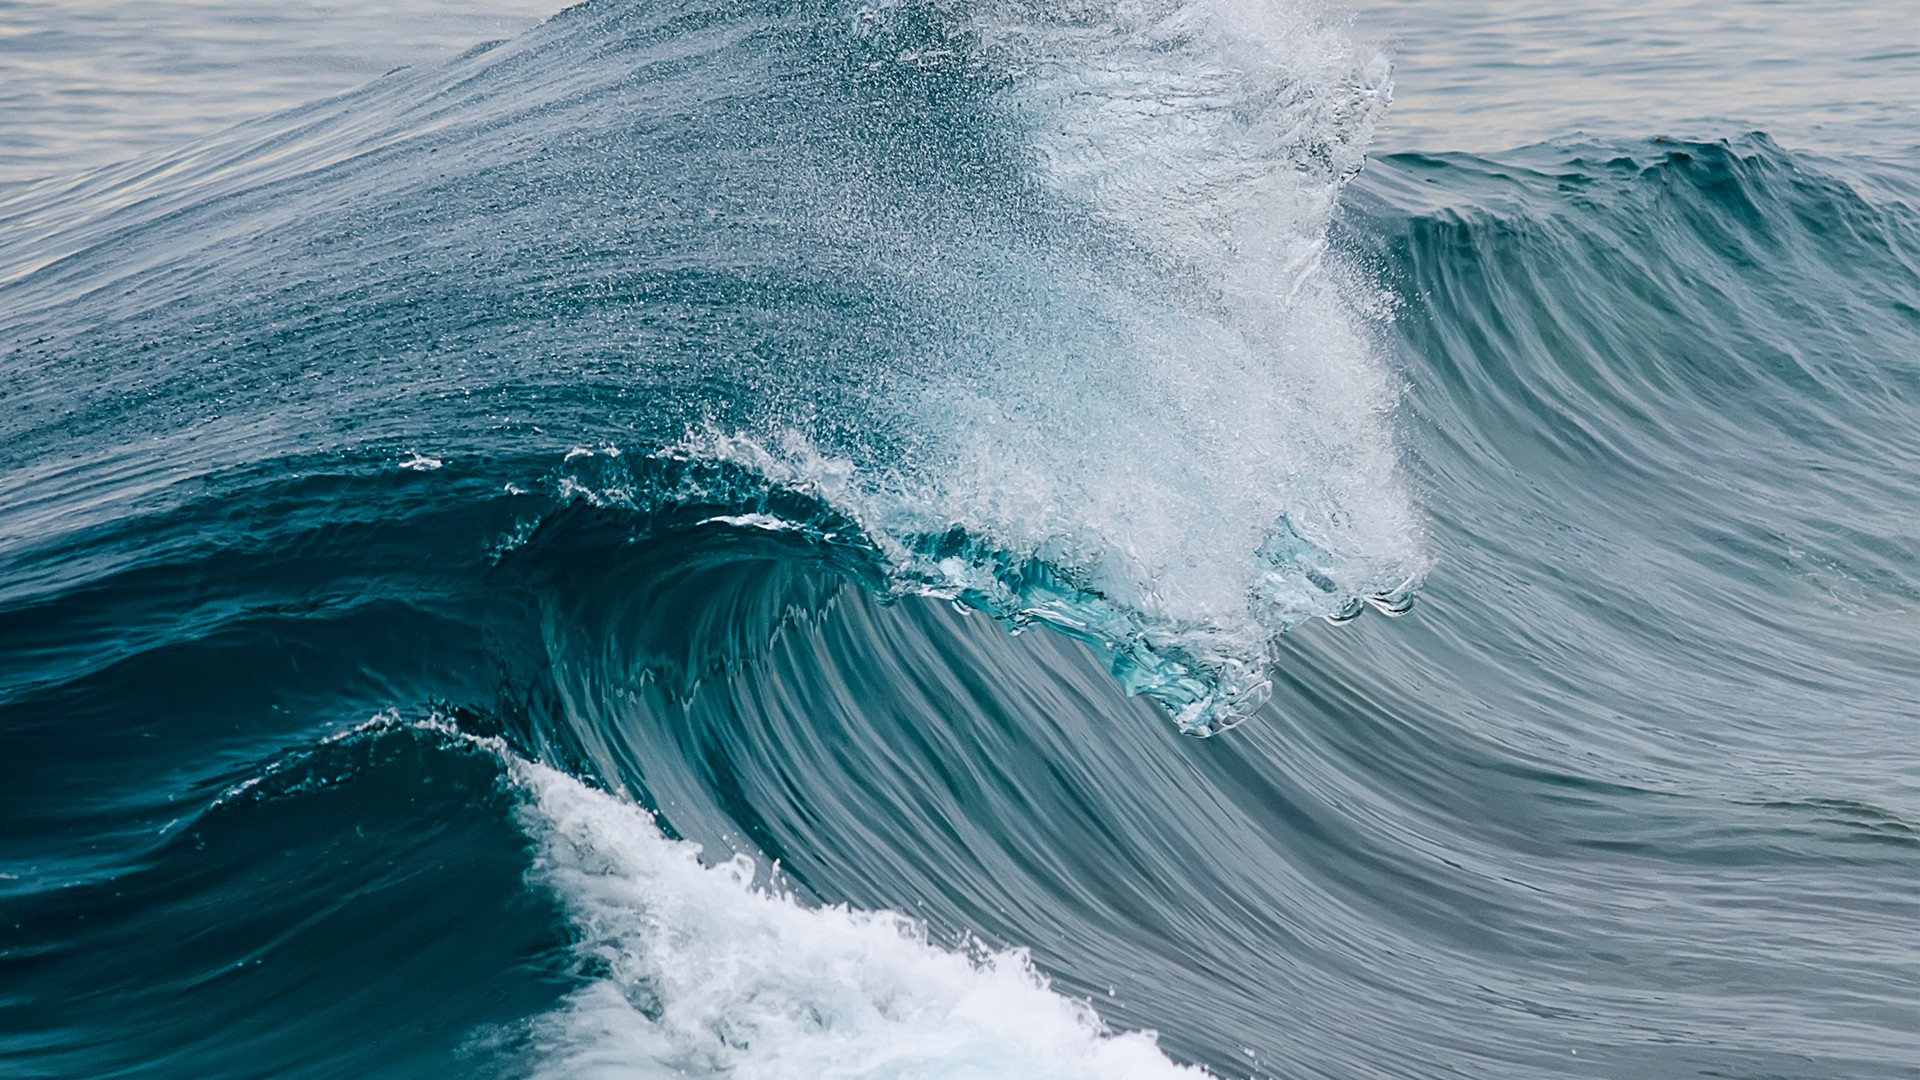 Wallpaper Full Hd Abstract Ocean Waves Wallpapers Hd Wallpapers Id 22826